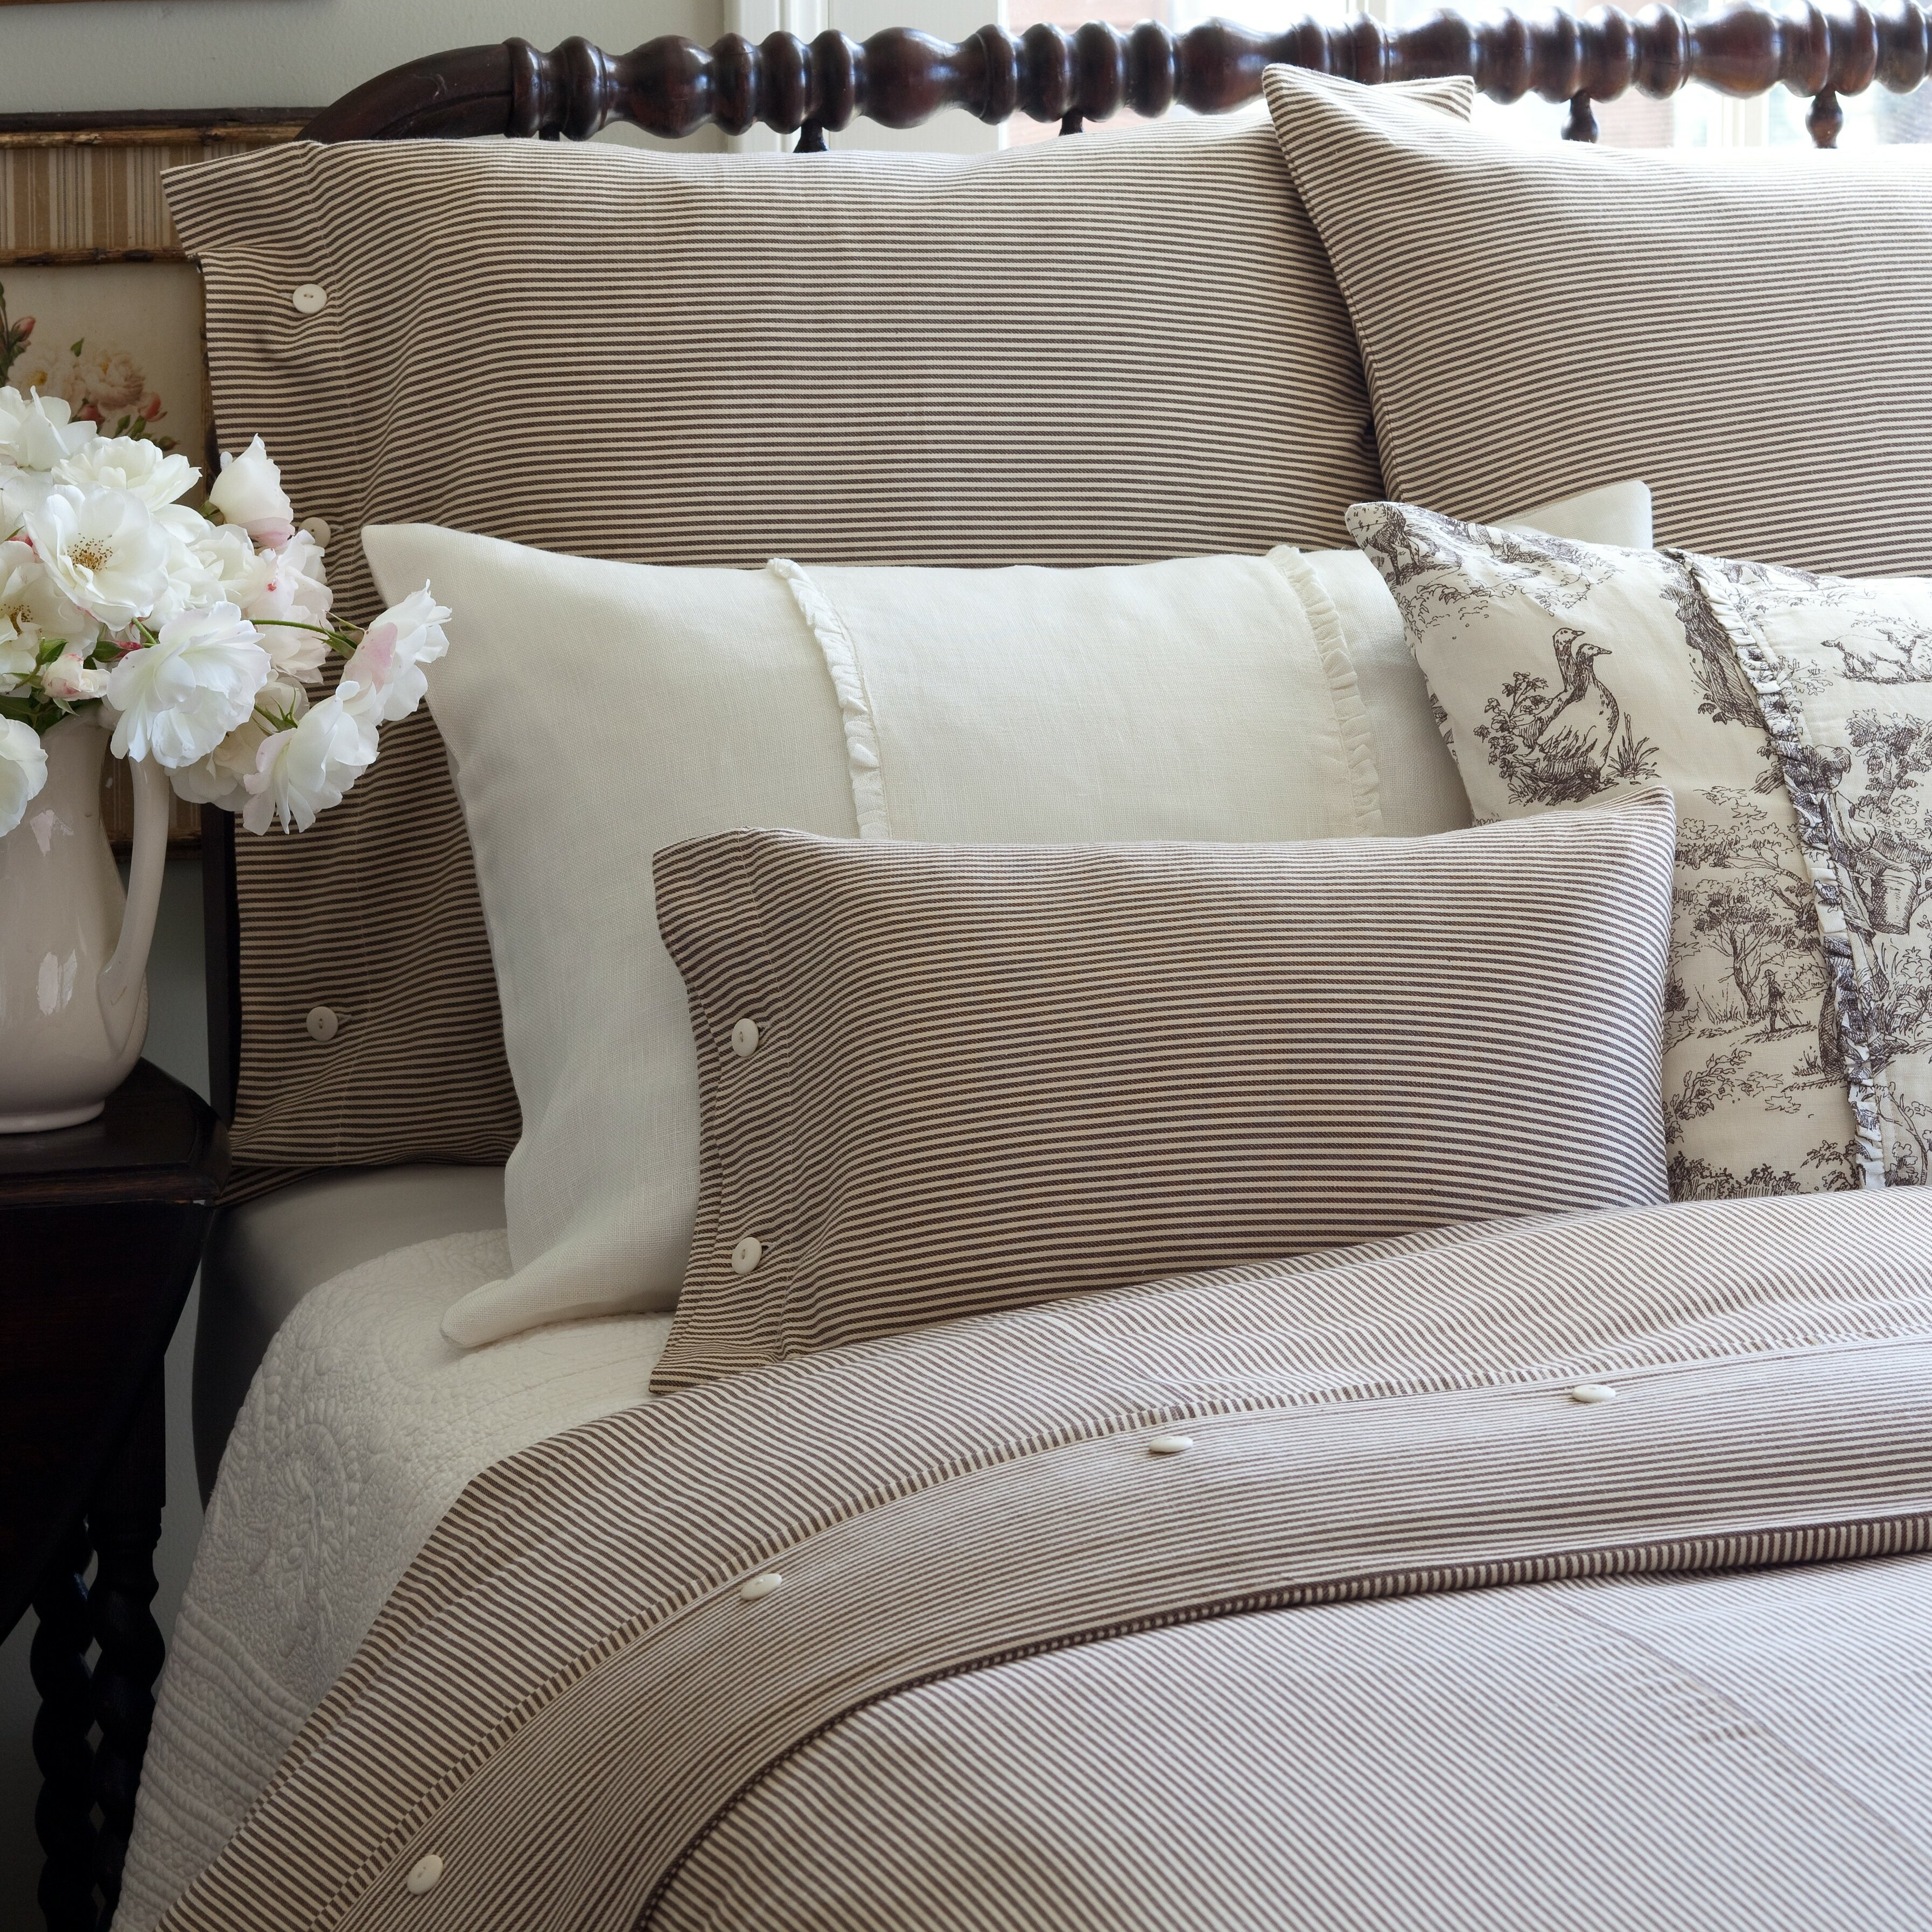 what media hilton va cushion kind use garden williamsburg pillow inn pillows of for gallery center sale does